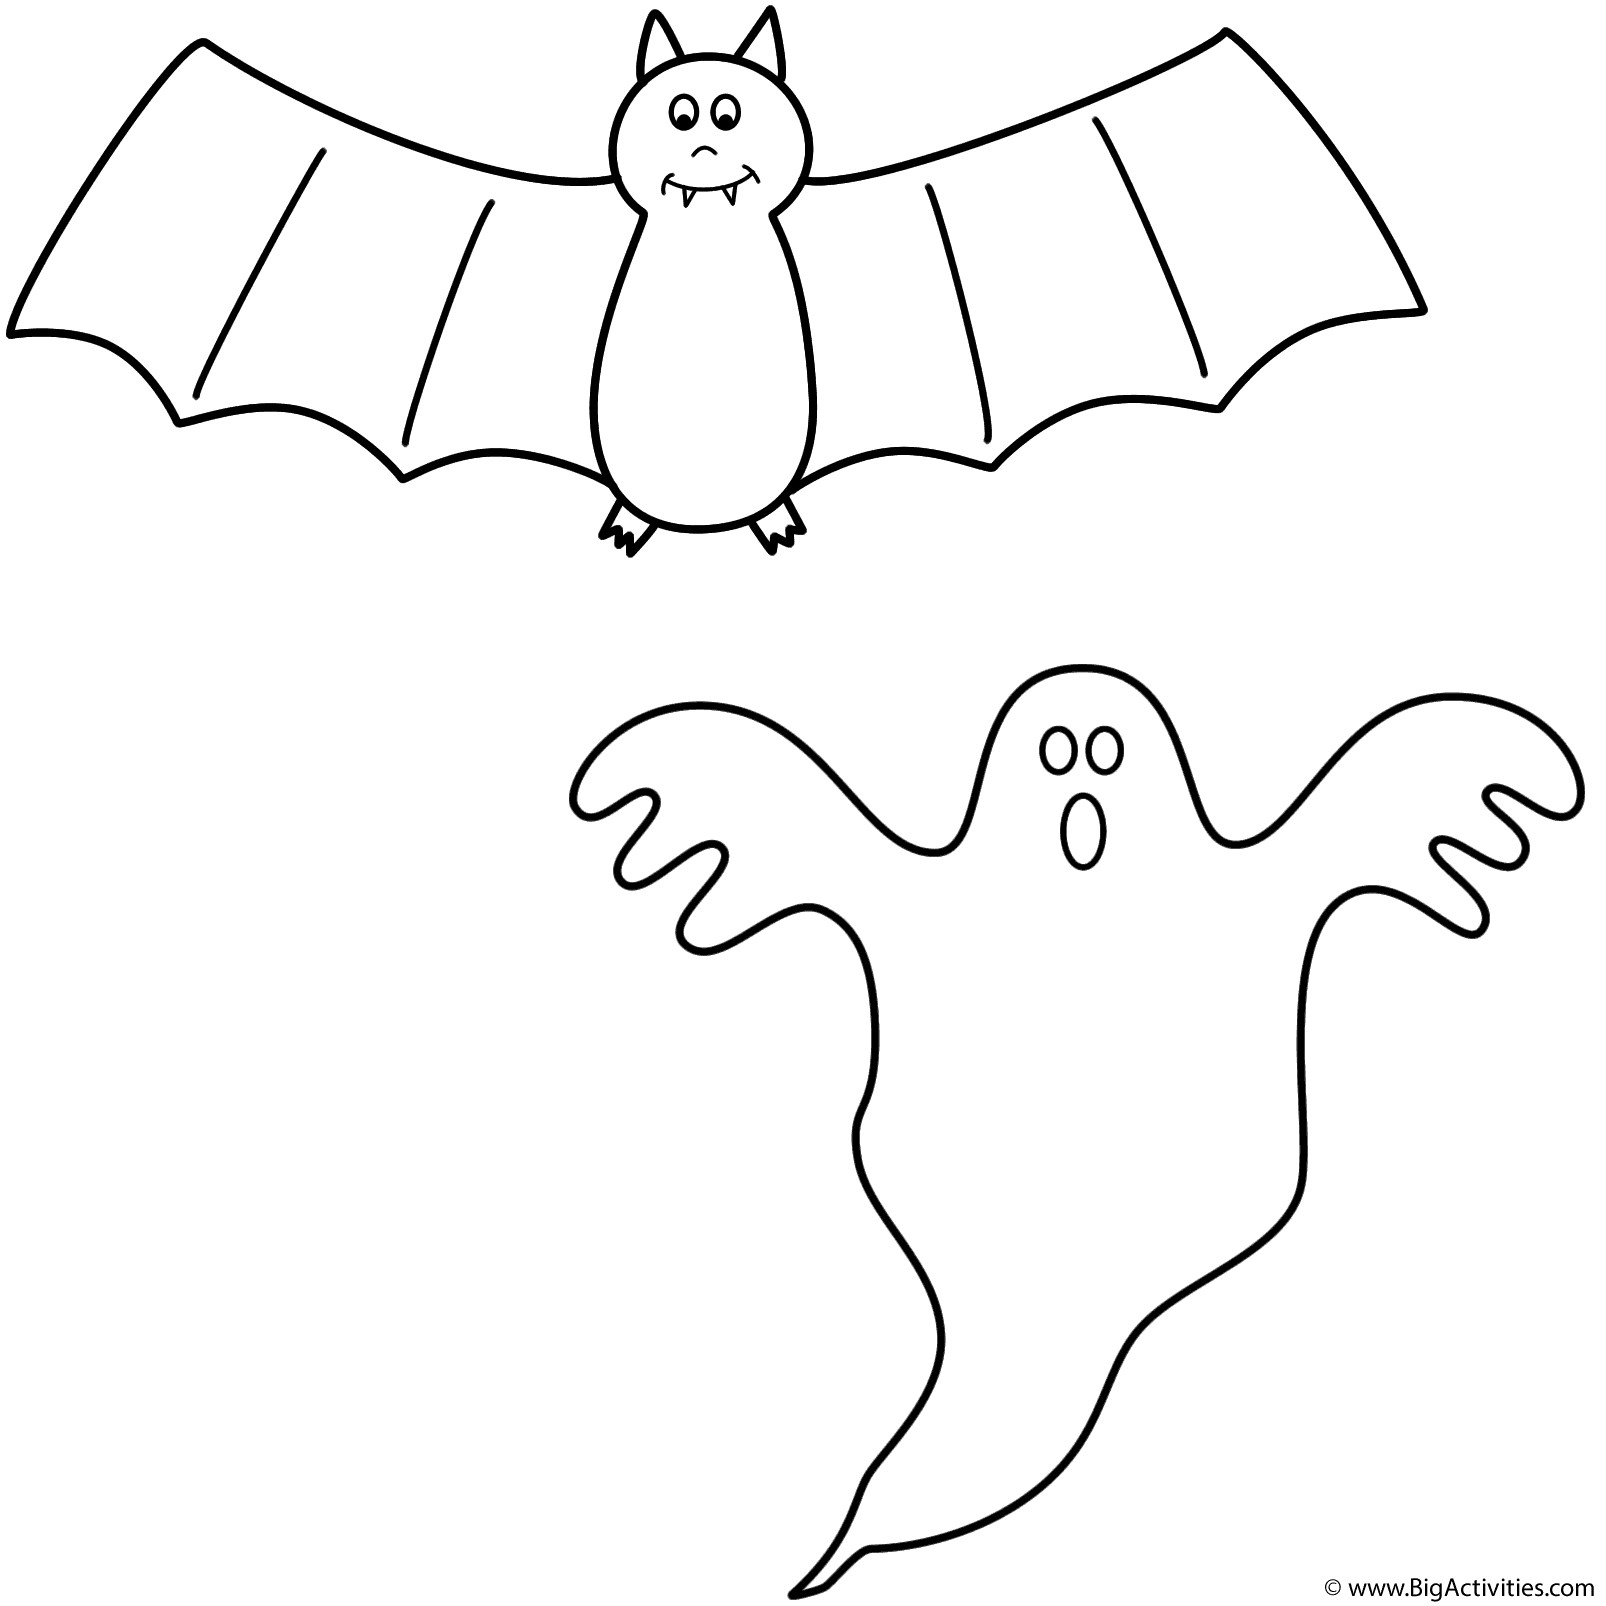 1606x1606 Epic Bat Coloring Page In Print